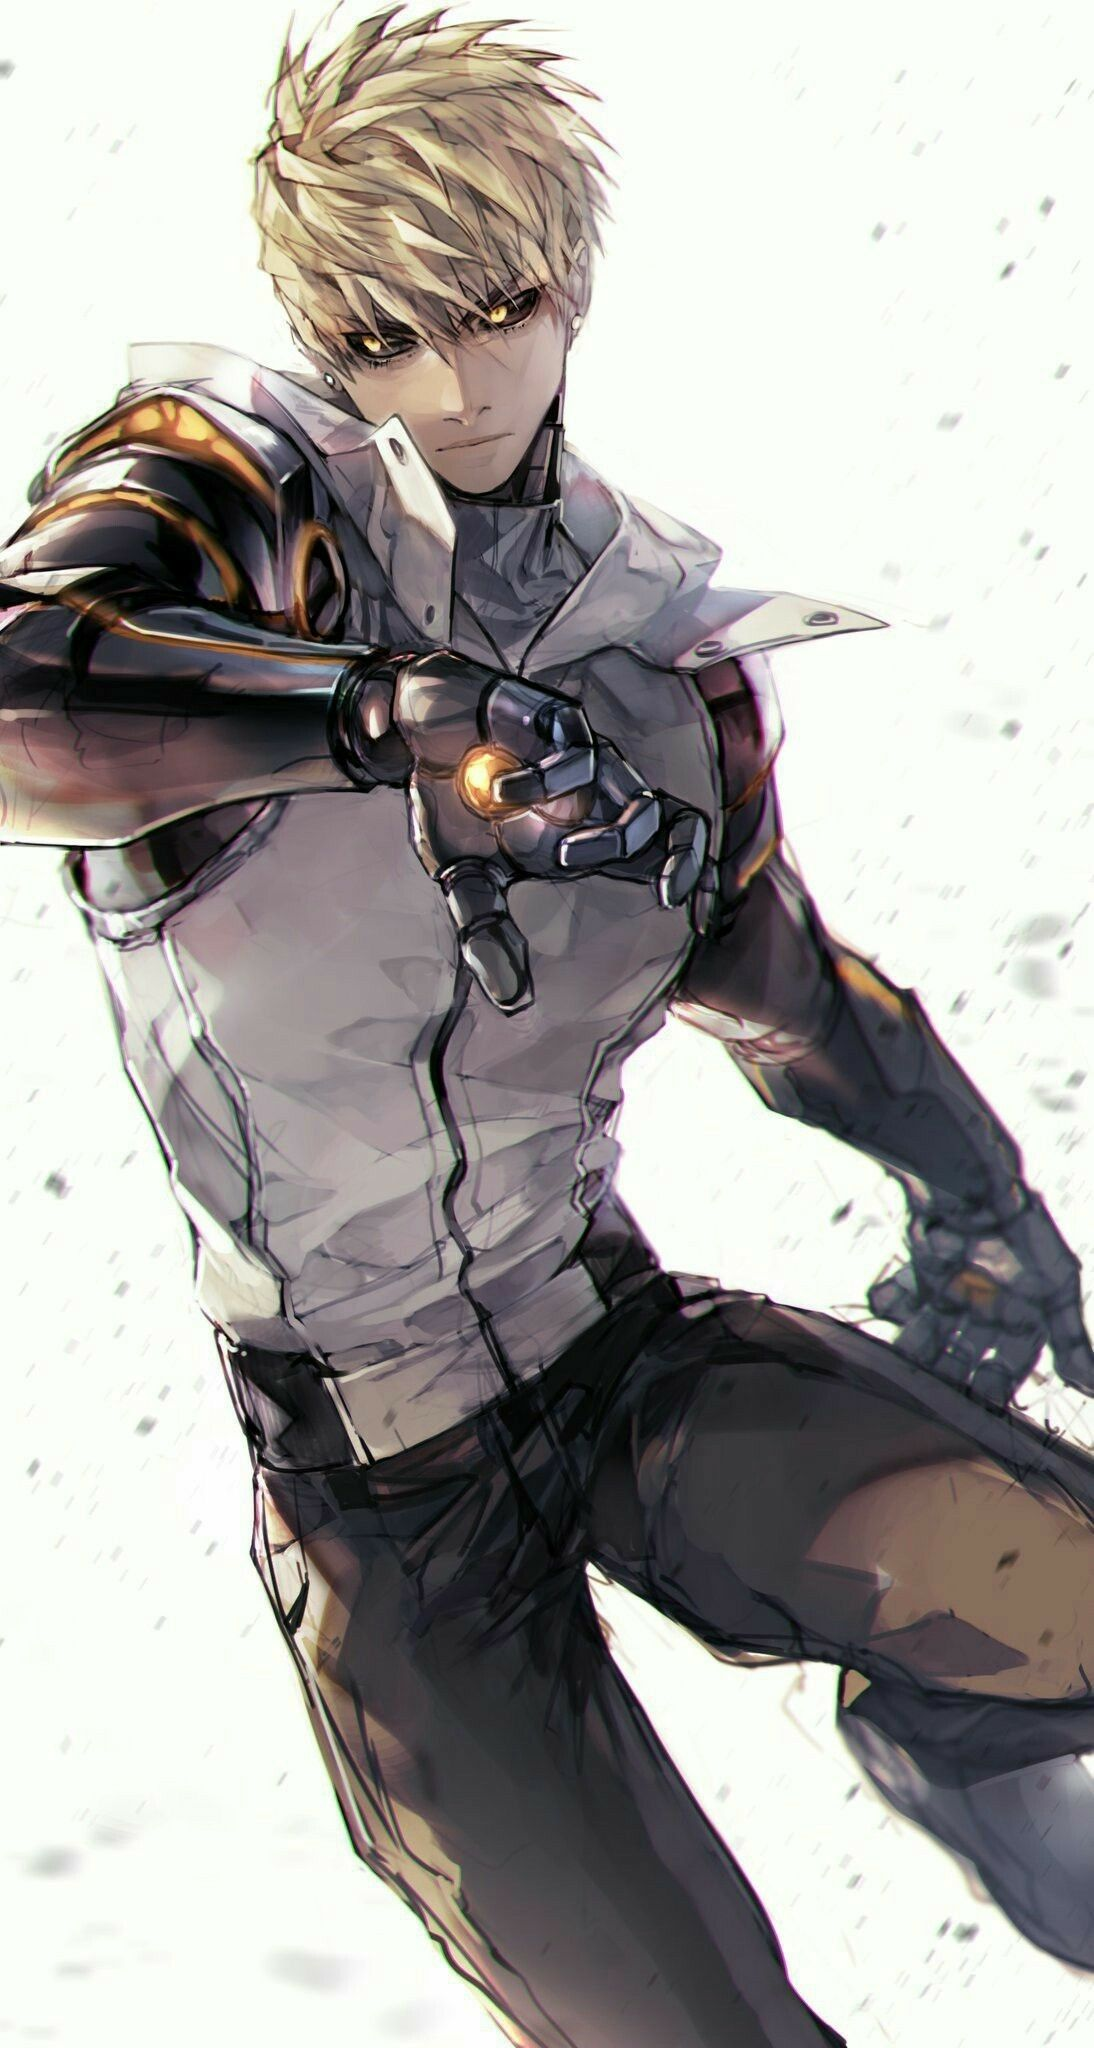 genos fanart onepunchman One punch man anime, One